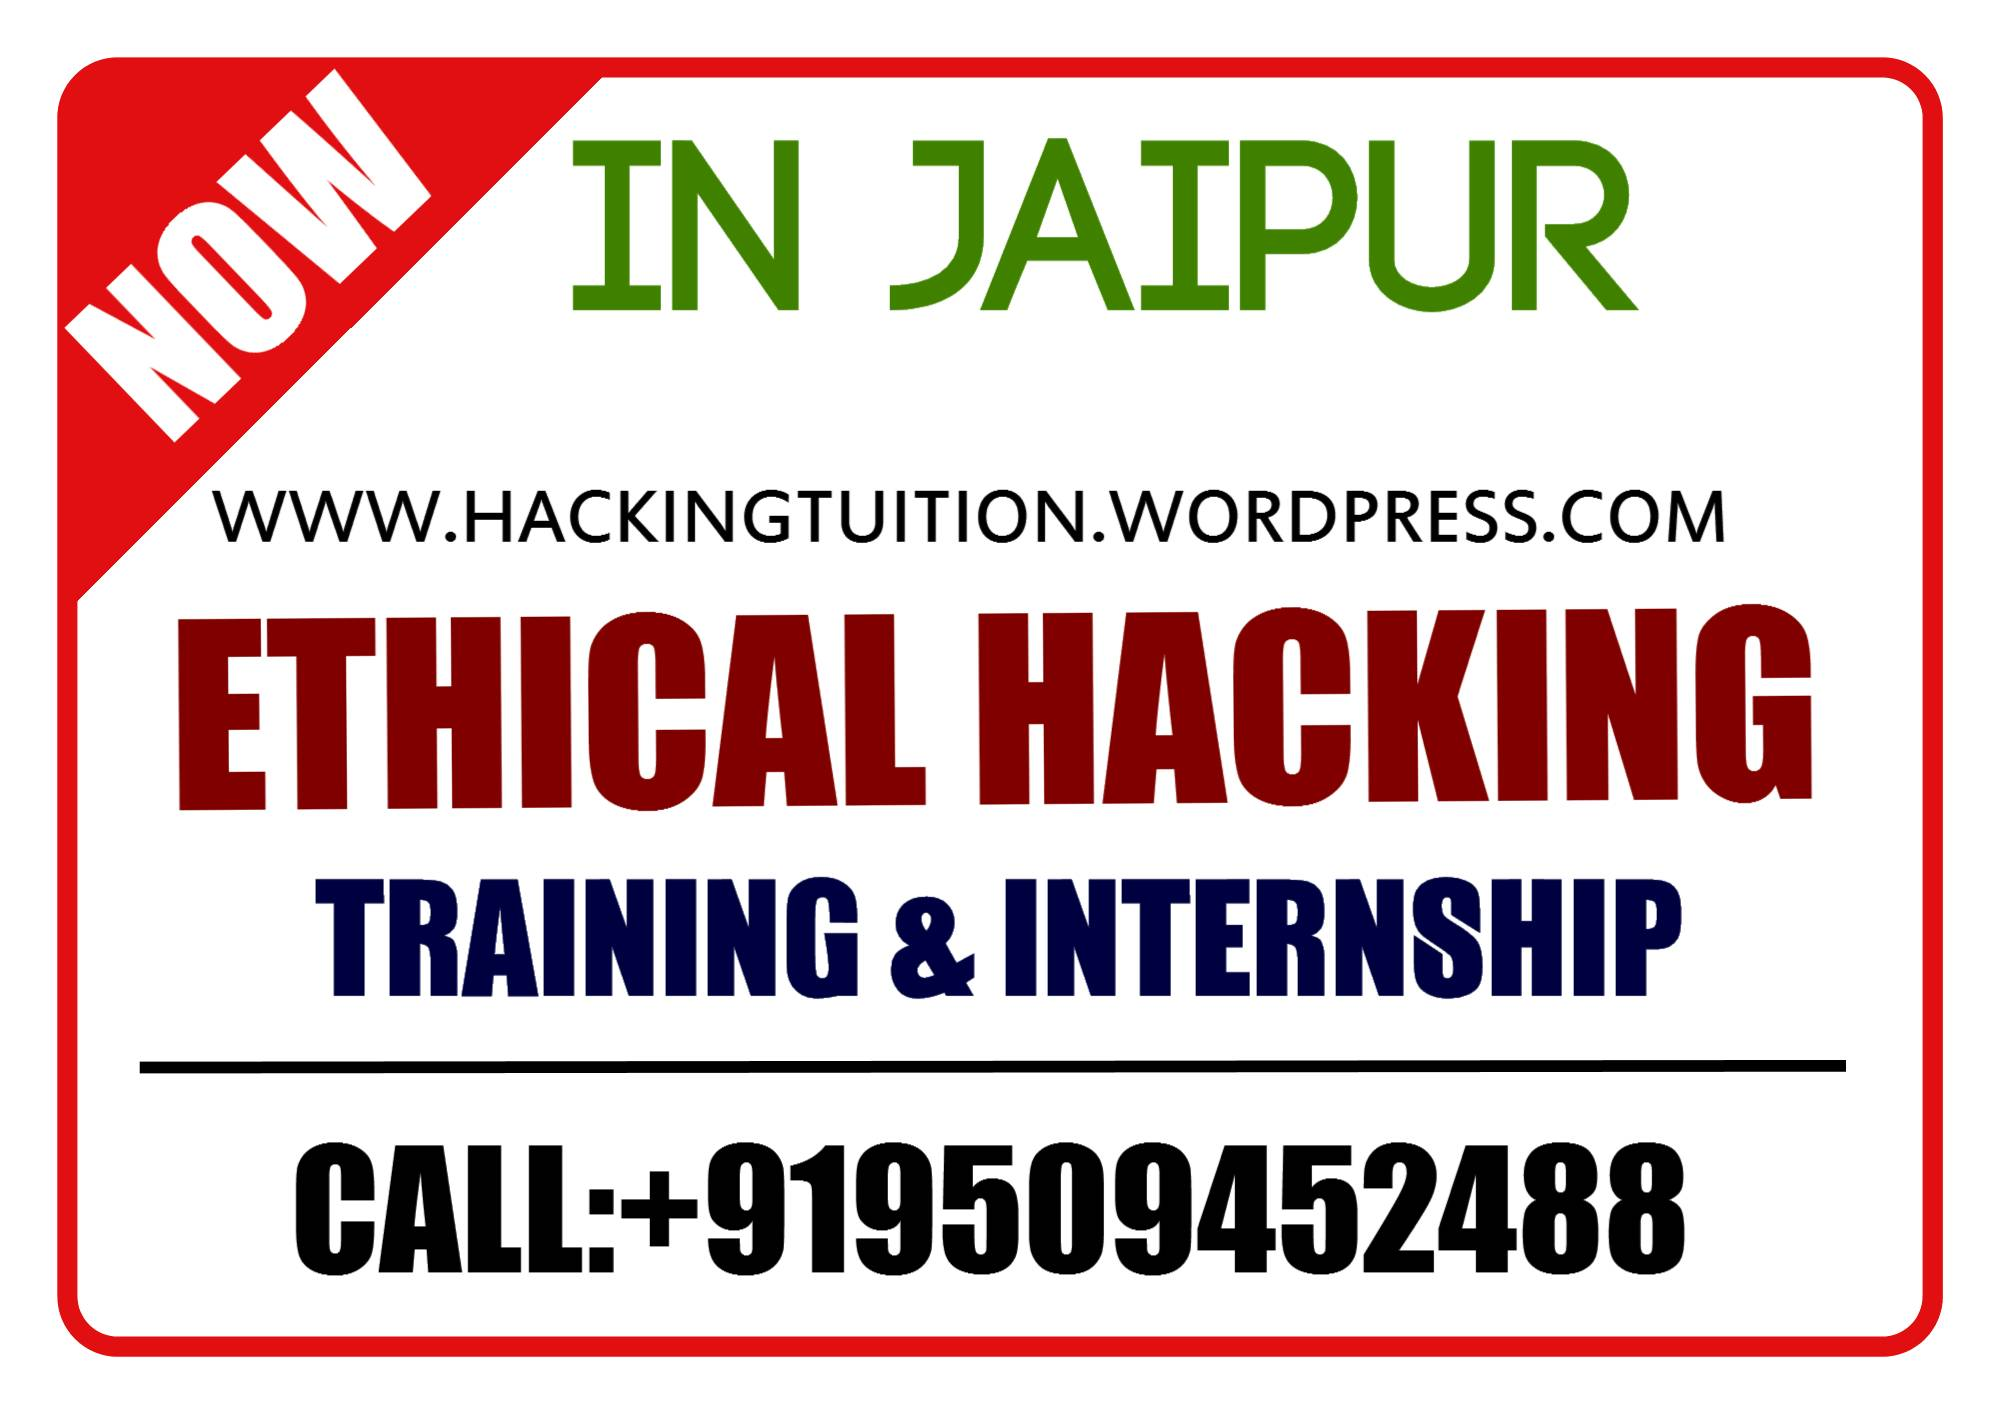 Cehv9 Training Ethical Hacking Tuition Center Jaipur